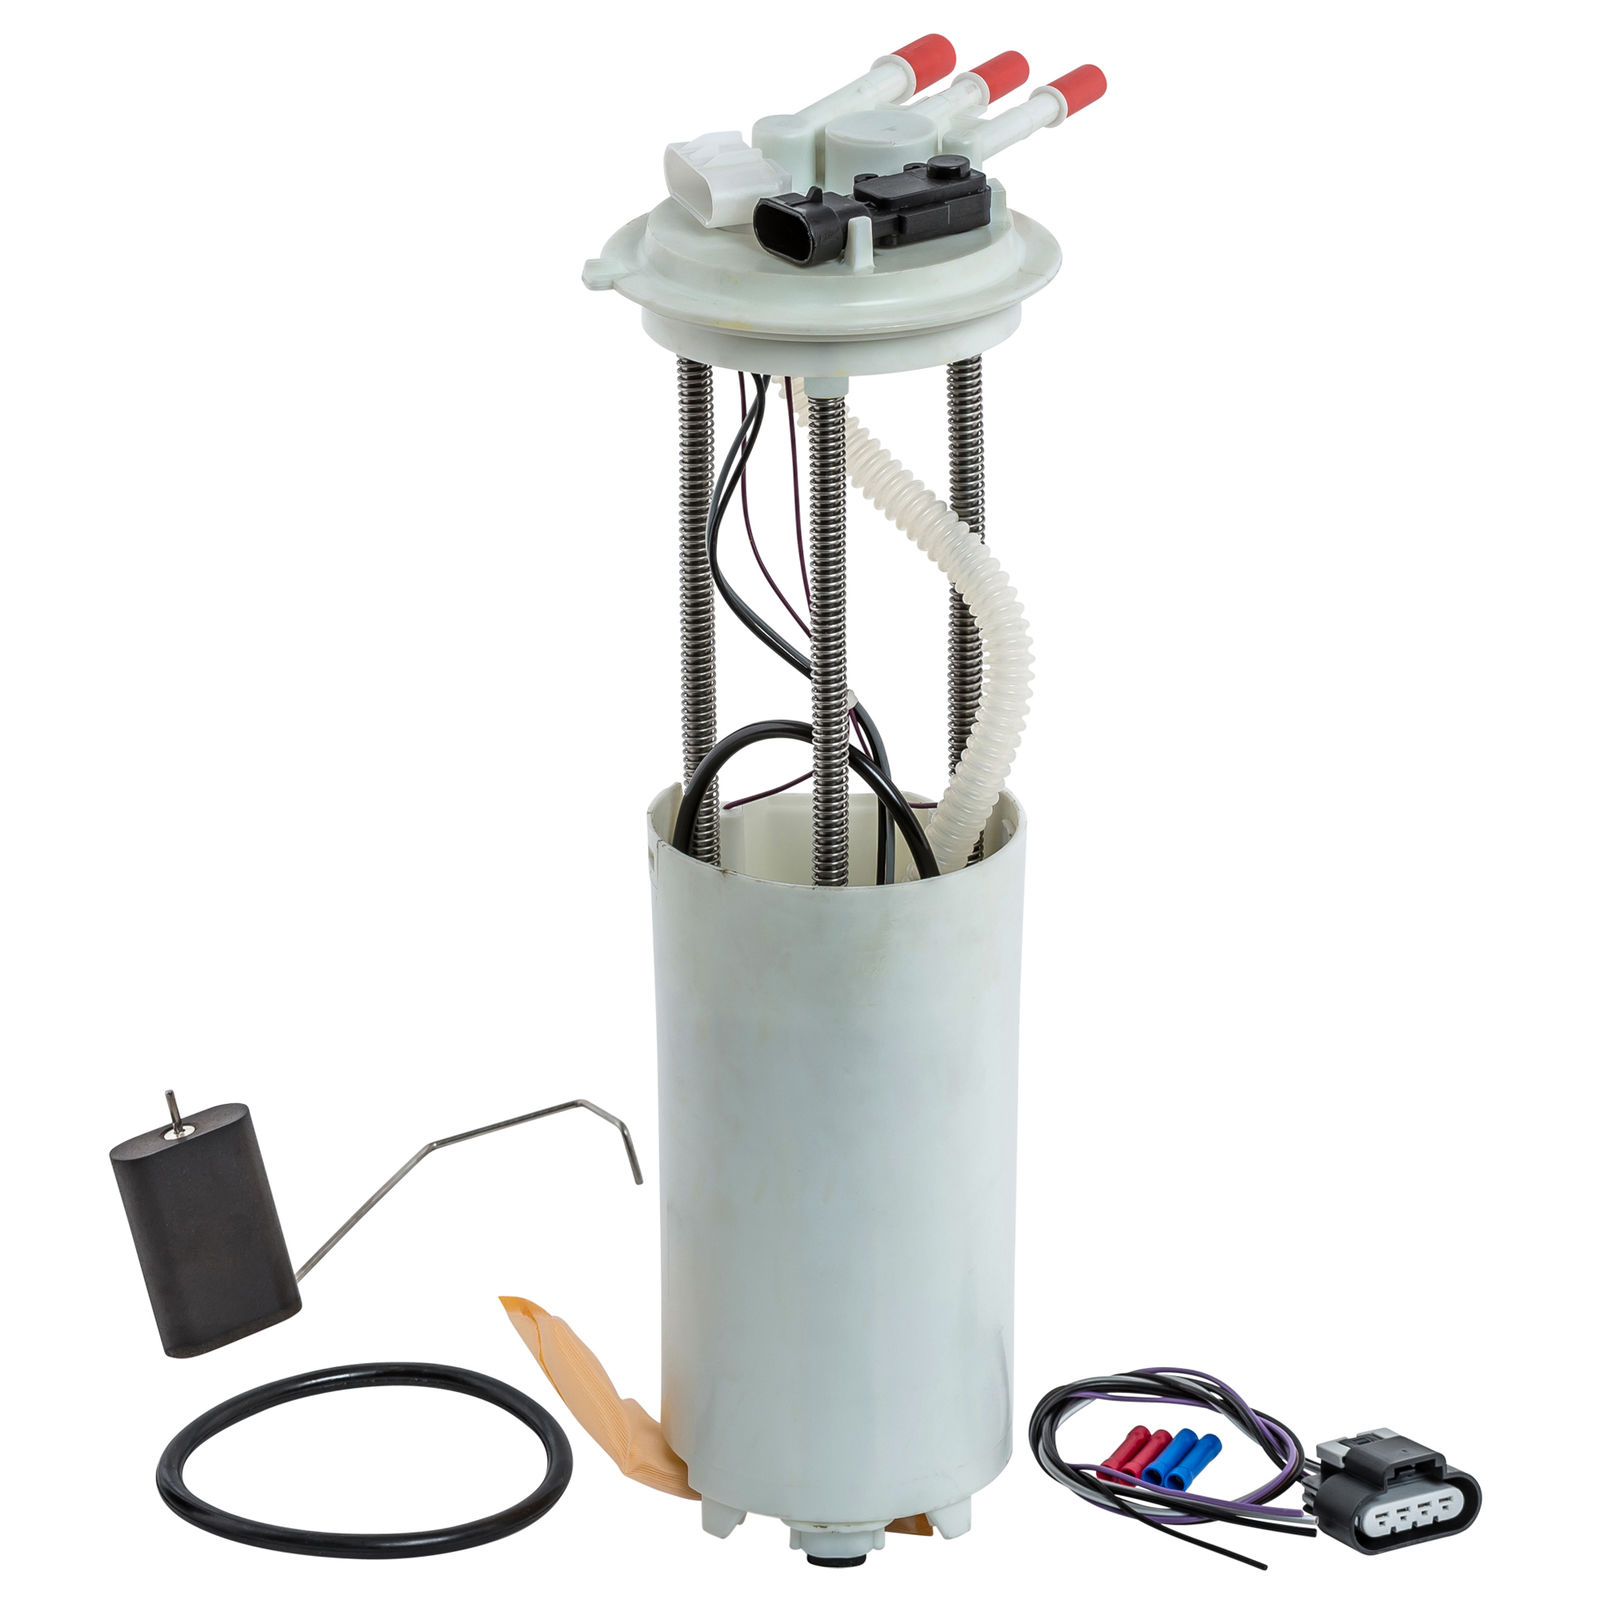 hight resolution of fuel pump 1997 1998 1999 2000 2001 2002 chevy blazer s10 gmc jimmy fits e3954m